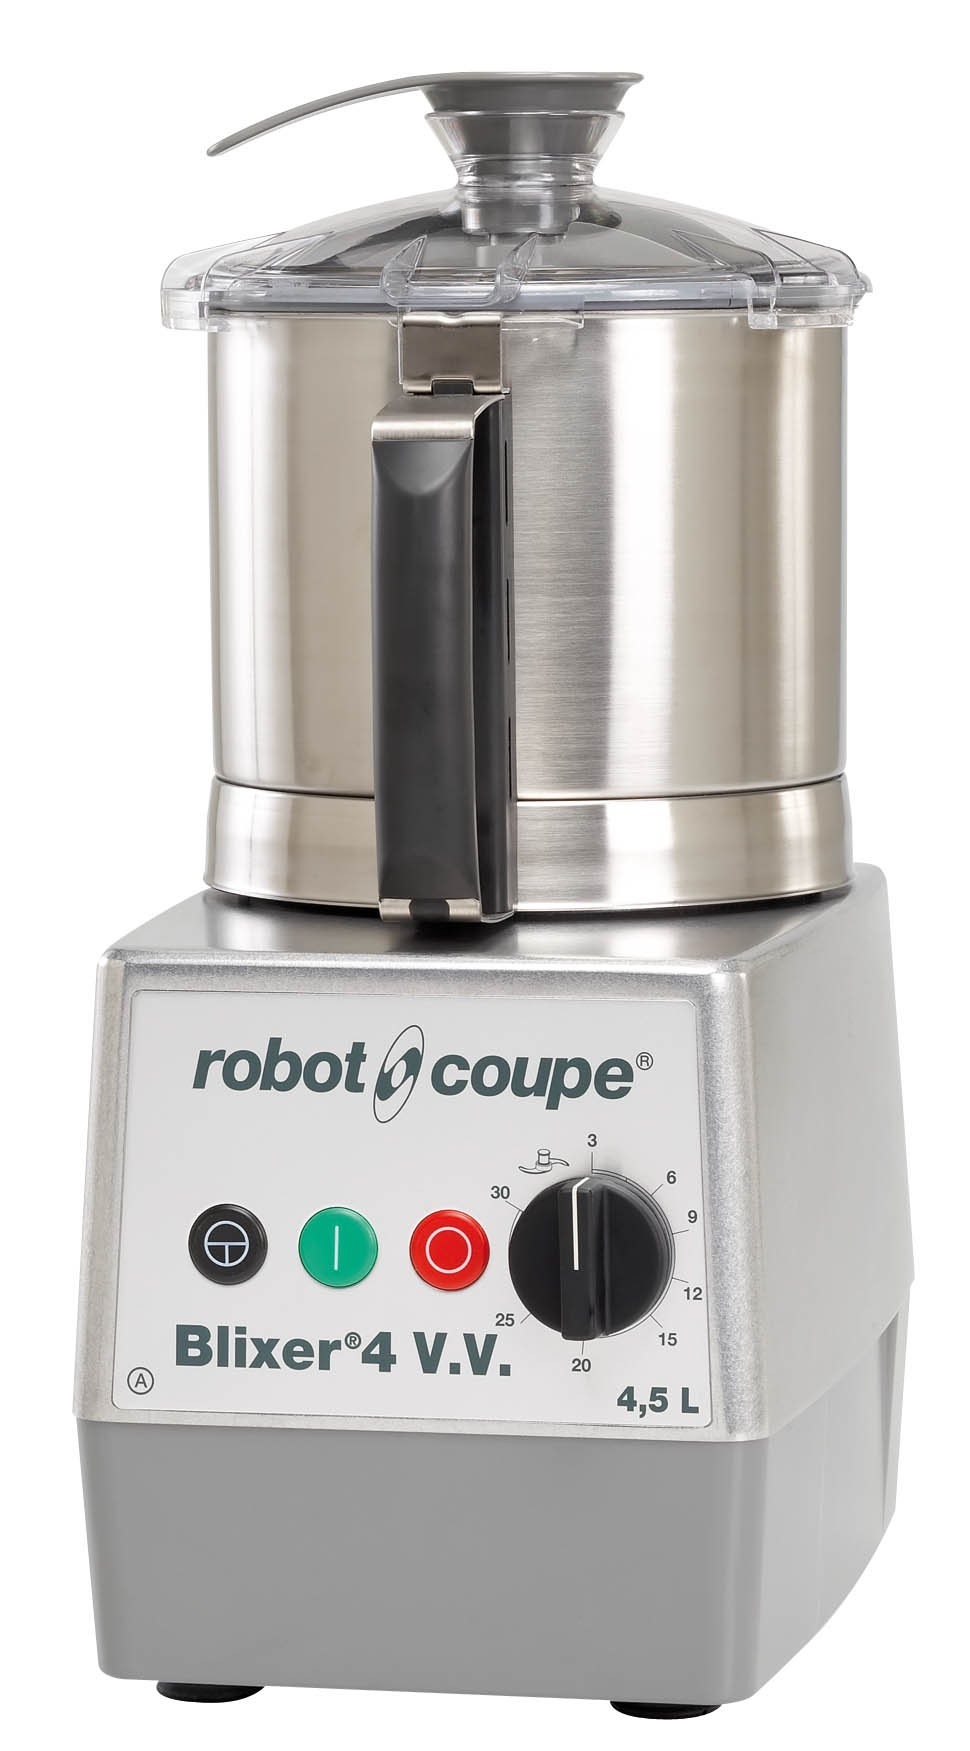 ROBOT COUPE BLIXER 4VV FOOD PROCESSOR